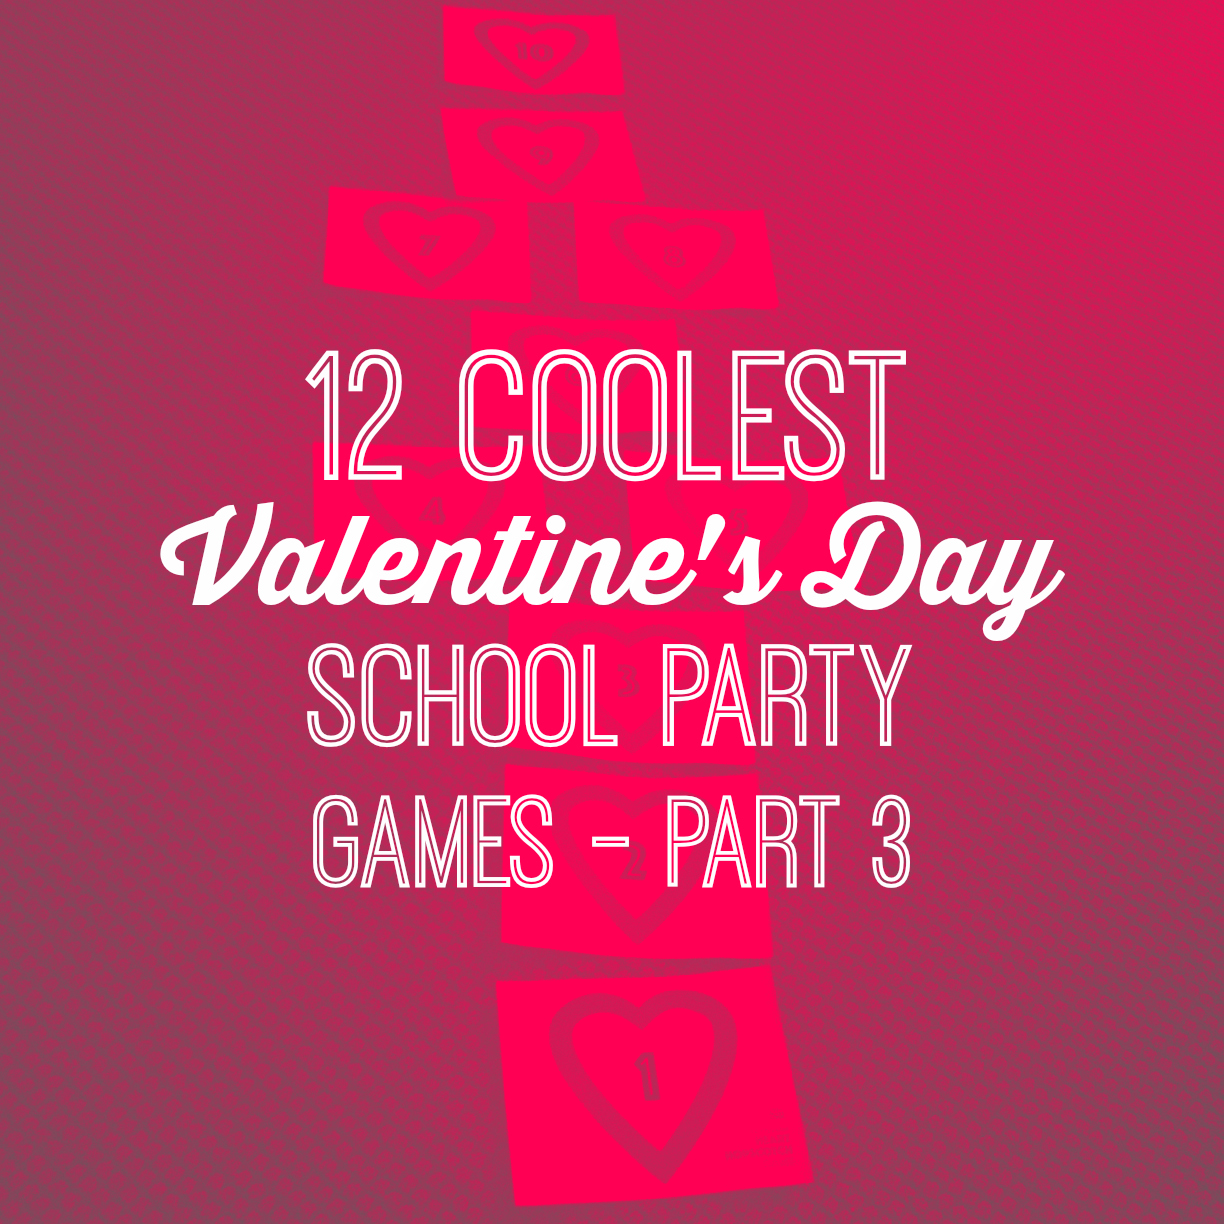 Elementary School Valentine's Day Party Games